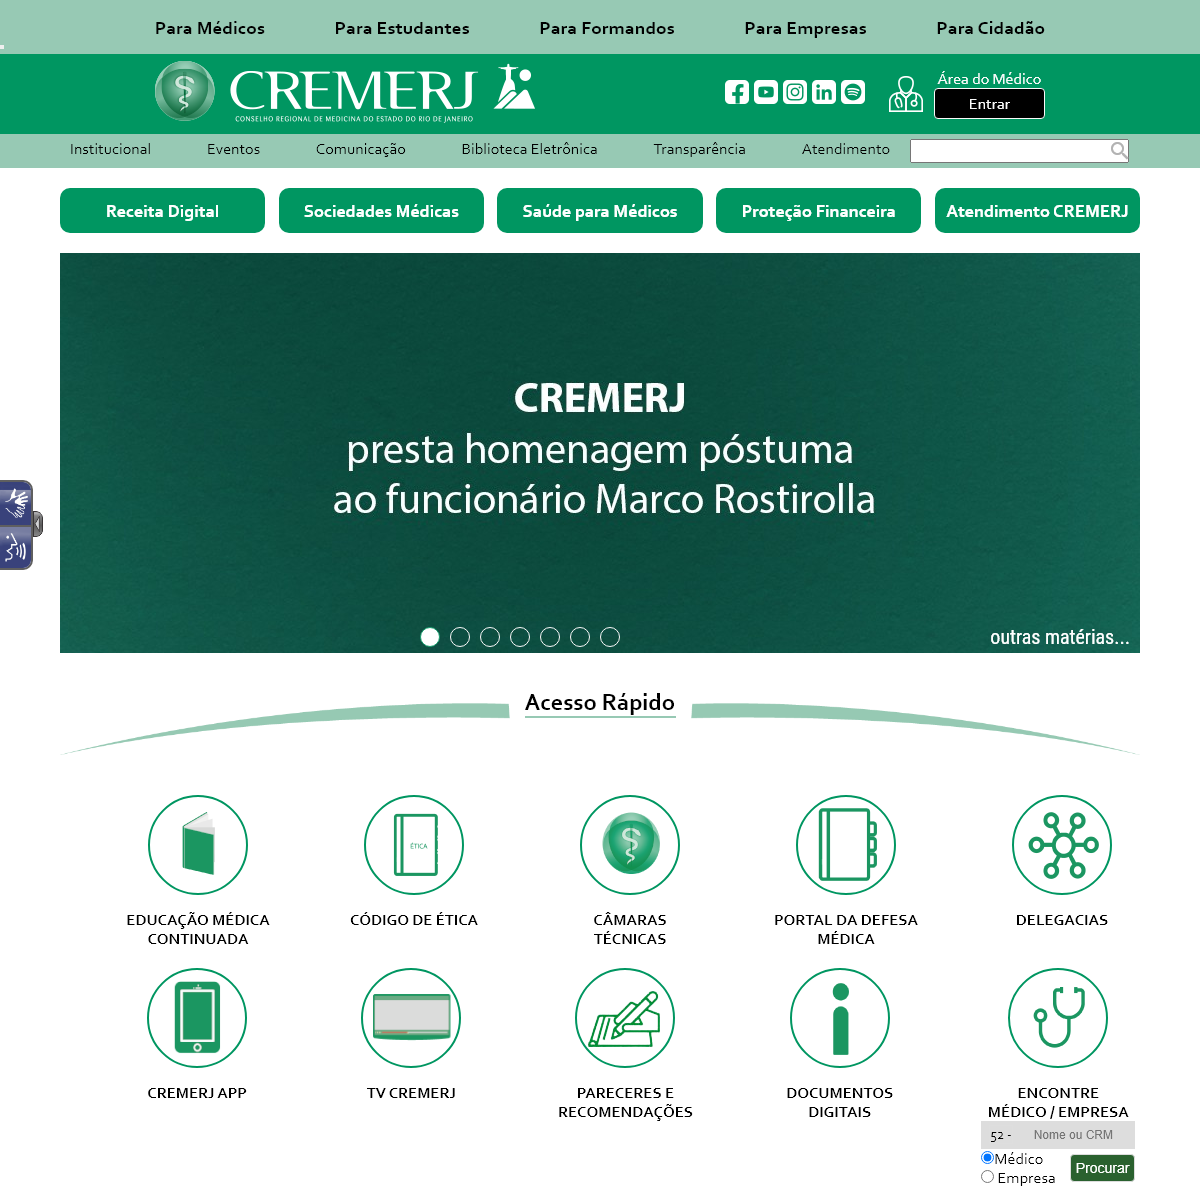 A complete backup of cremerj.org.br